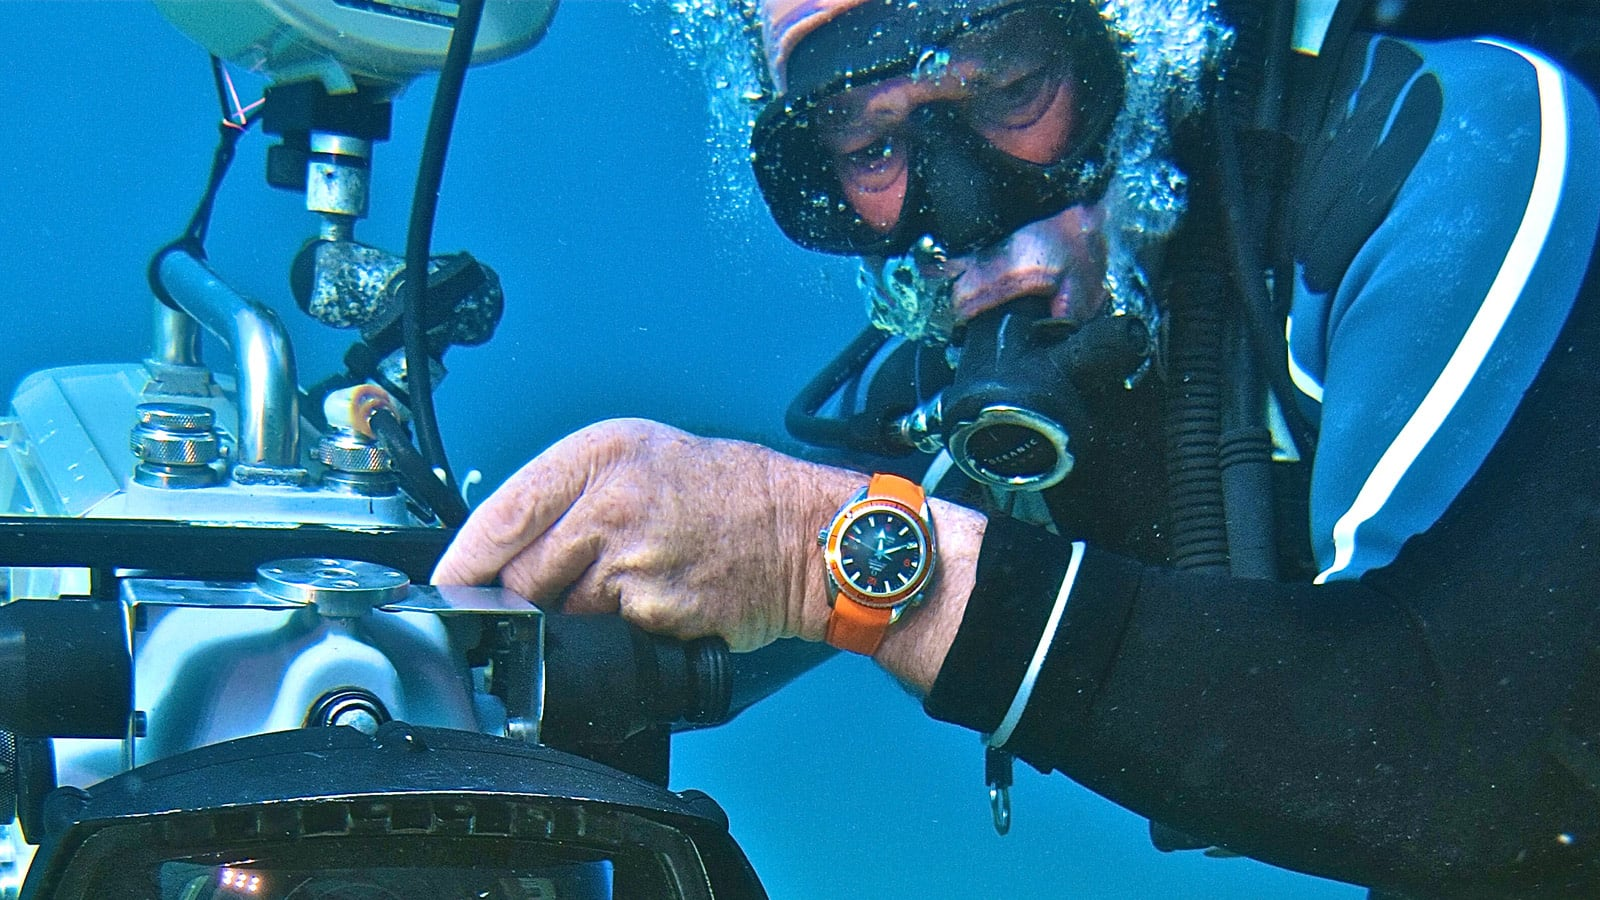 Close view of a cameraman underwater with his Omega watch